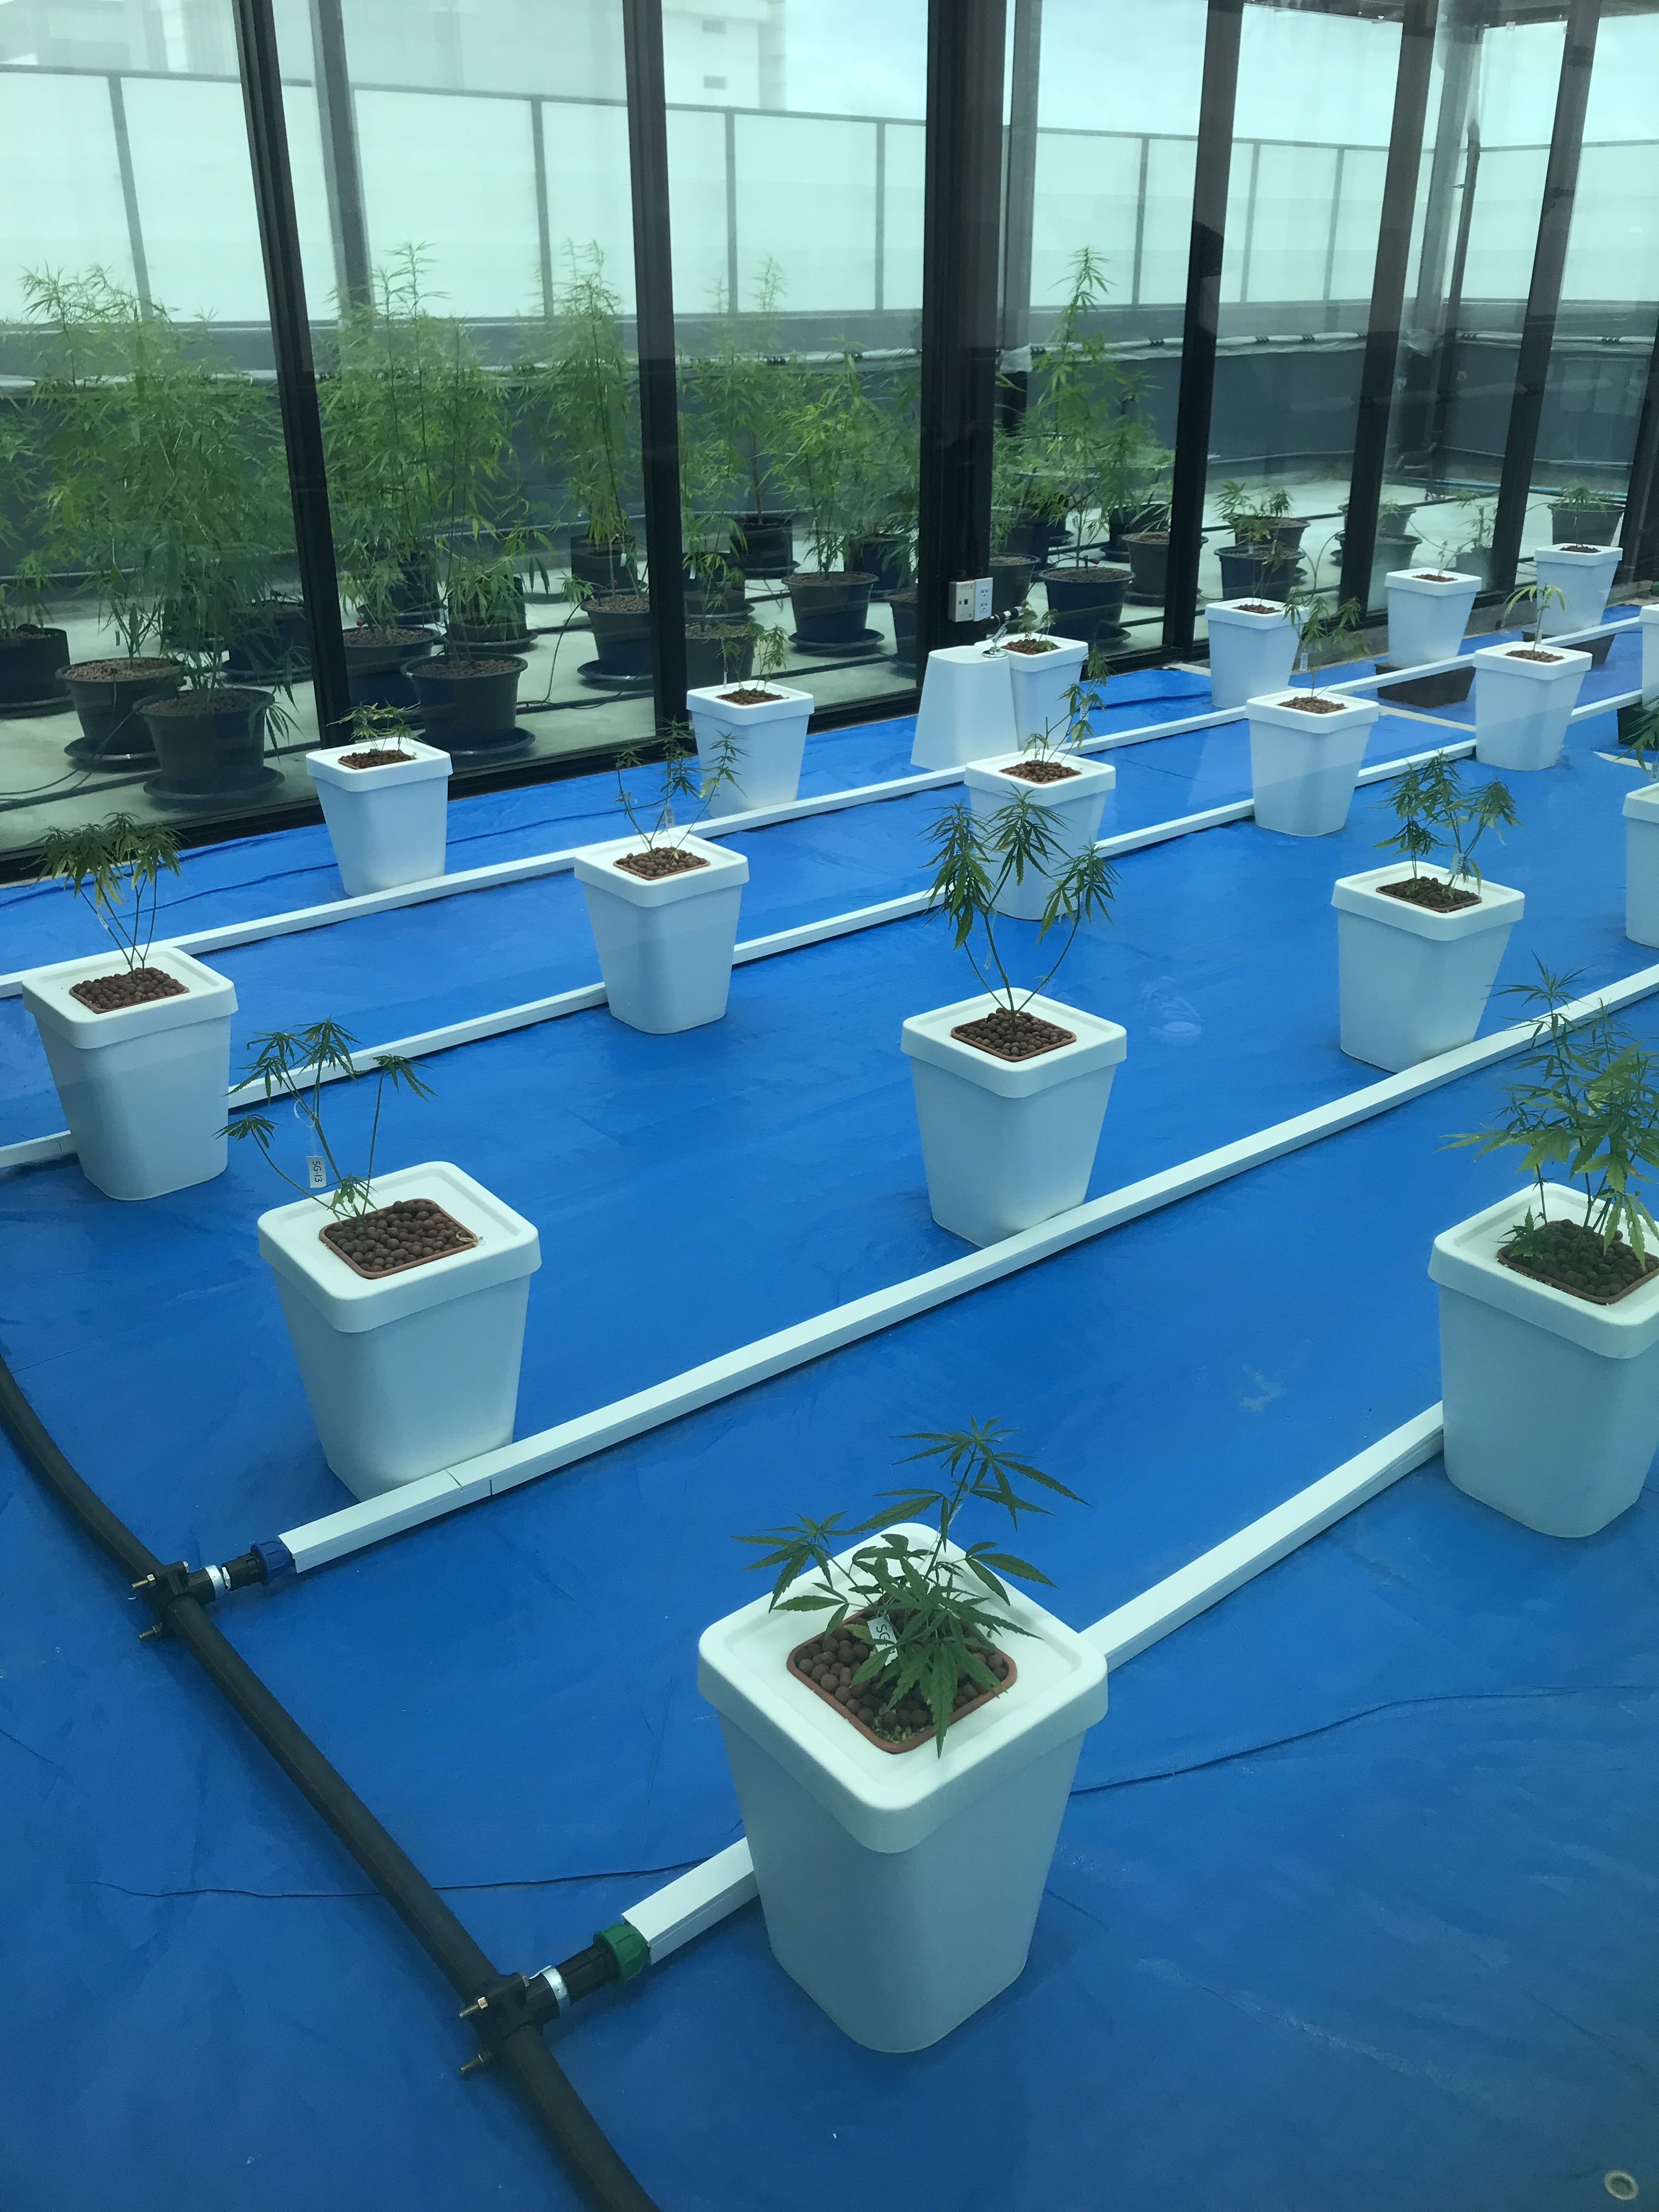 The first crop of legal cannabis plants grown by Thai professors at Rangsit University in a legal lab north of Bangkok.